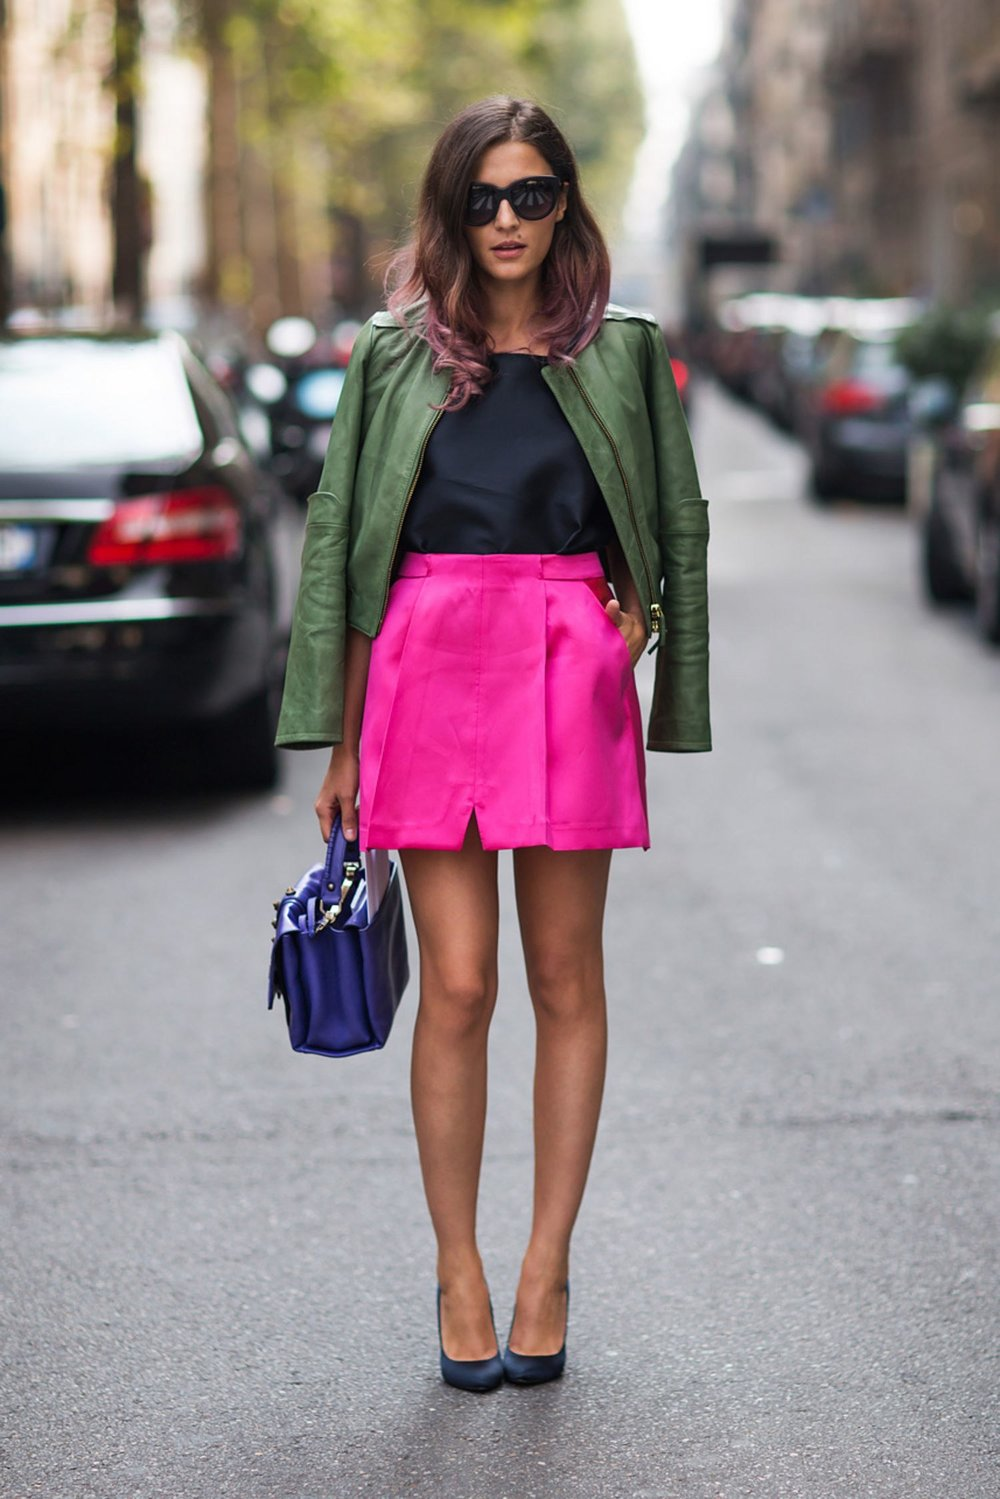 fashion-2015-09-fall-color-hot-pink-army-green-stockholm-streetstyle-main.jpg